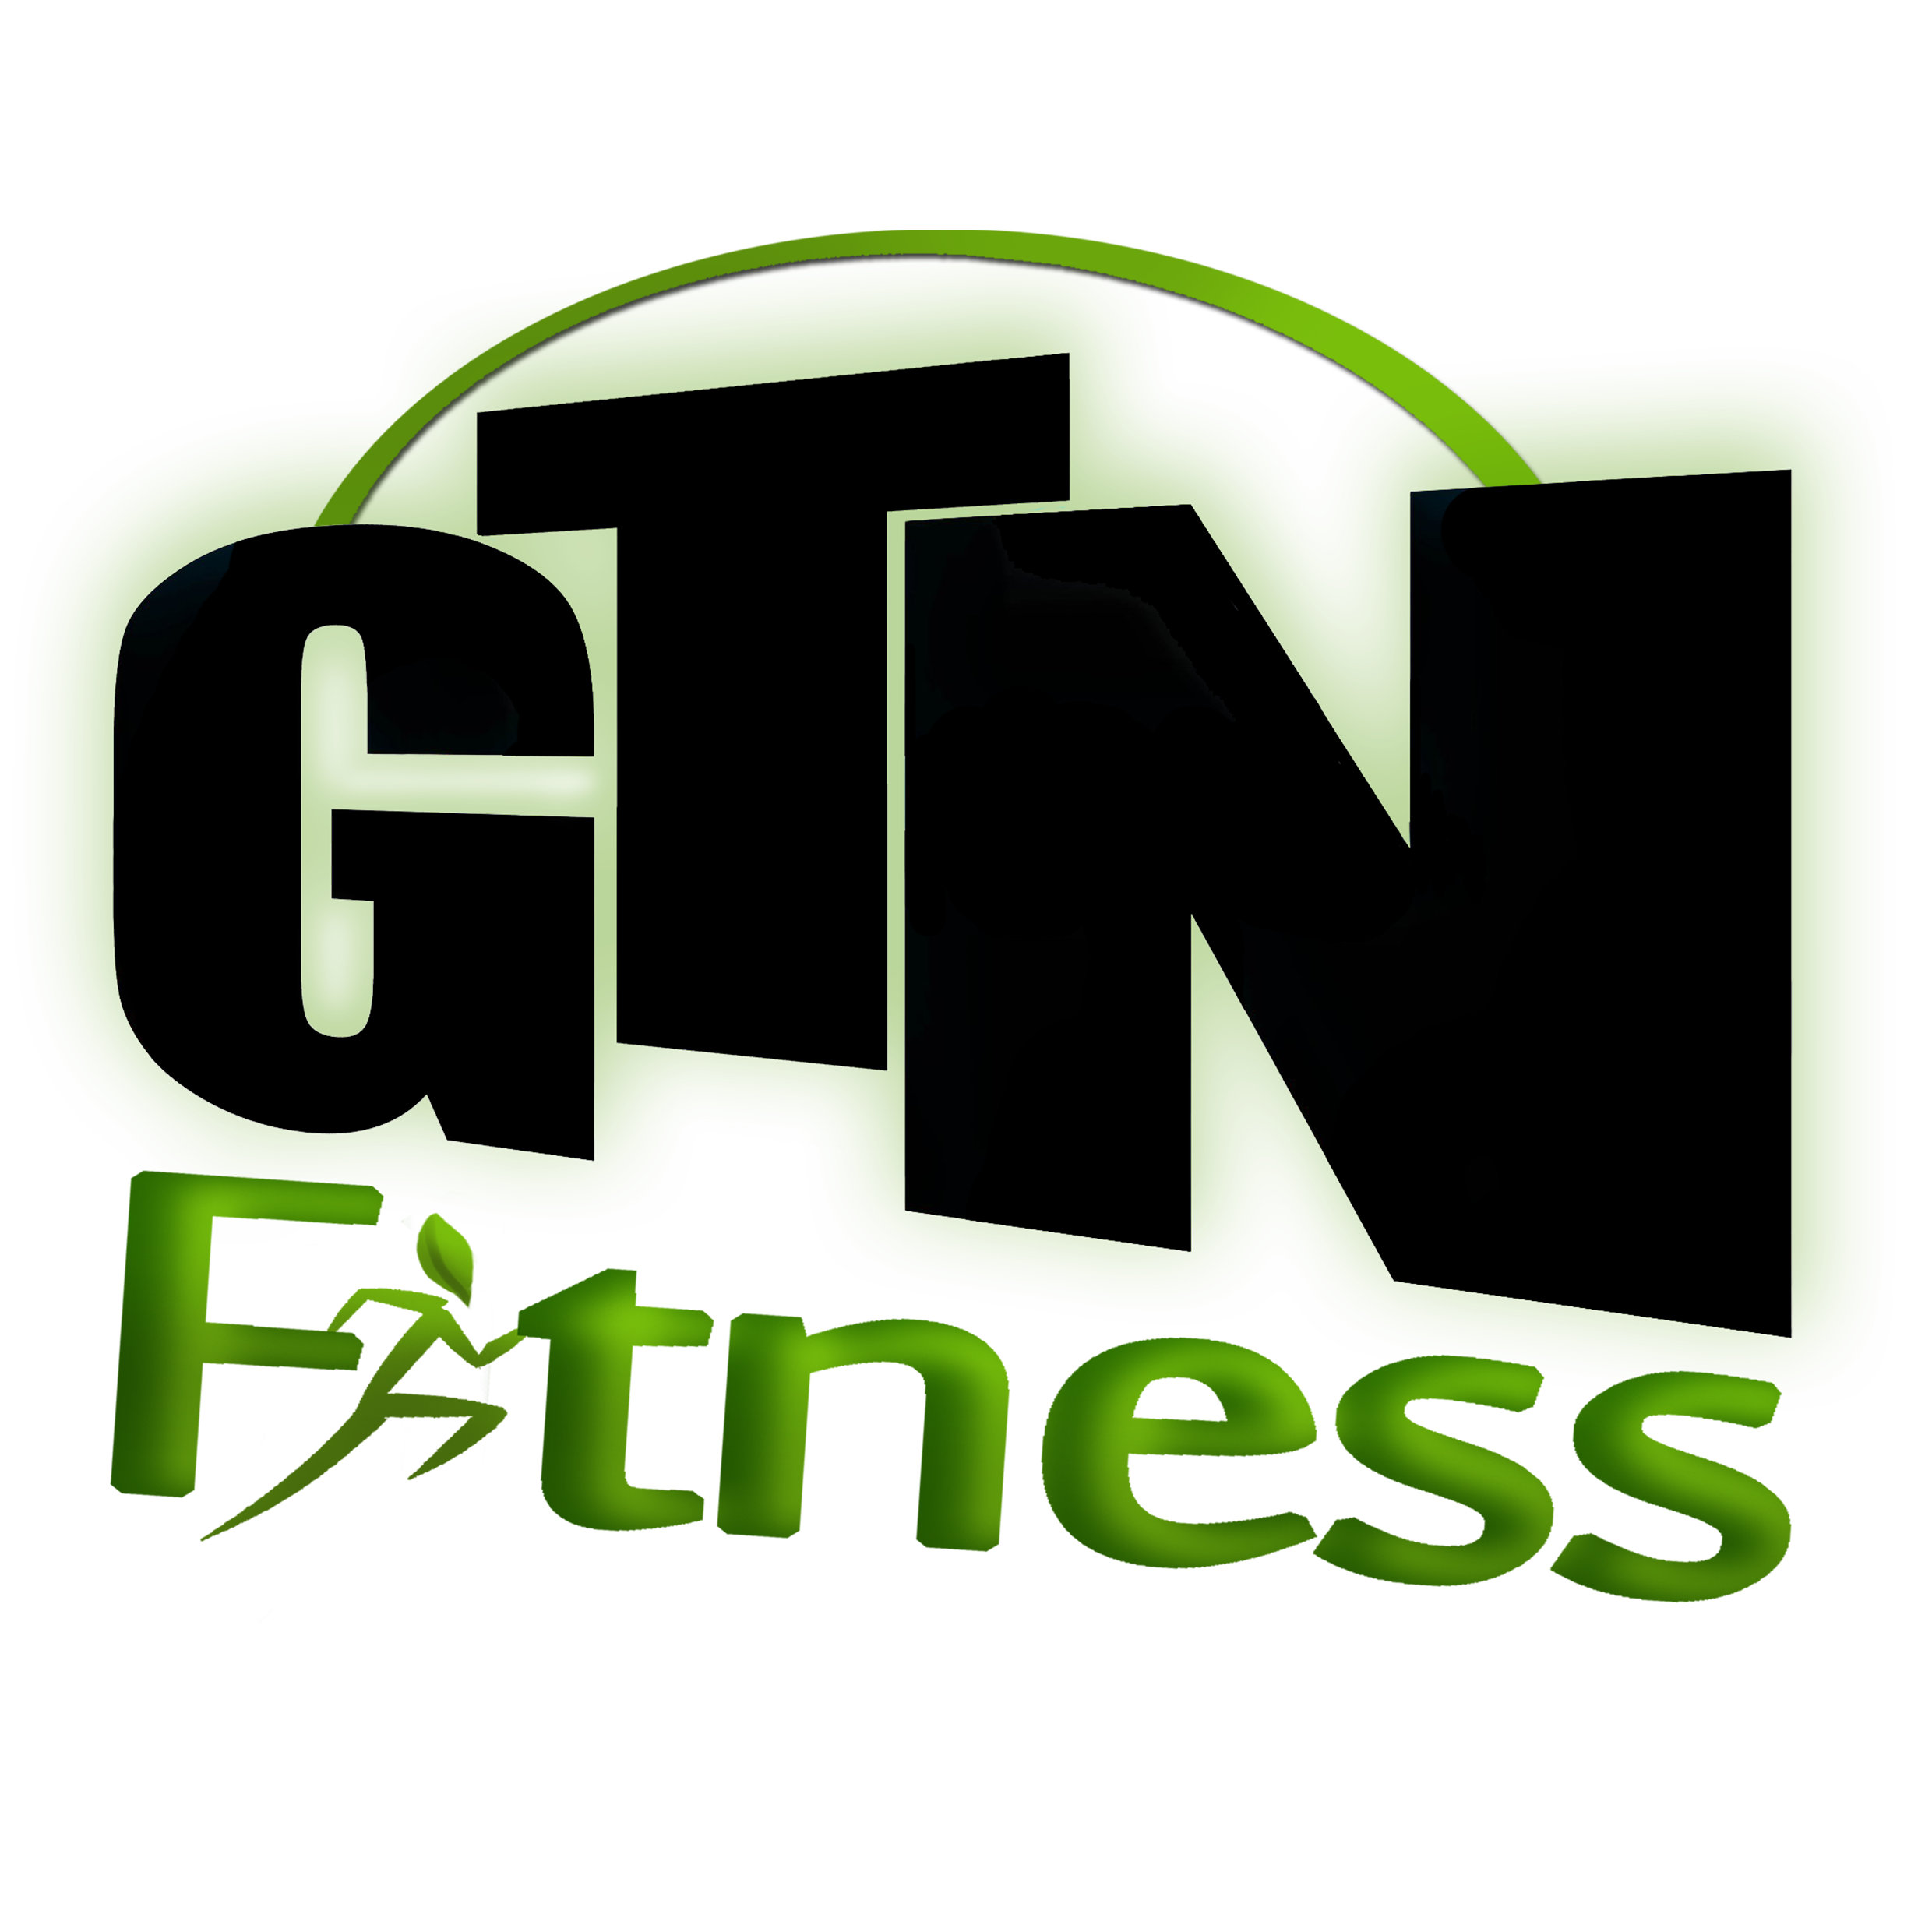 GTN Fitness - One of the Leading Bodyweight Training Specialist's In The UK. 1 to 1 Personal Training in Maida Vale, London W9 and surrounding areas.